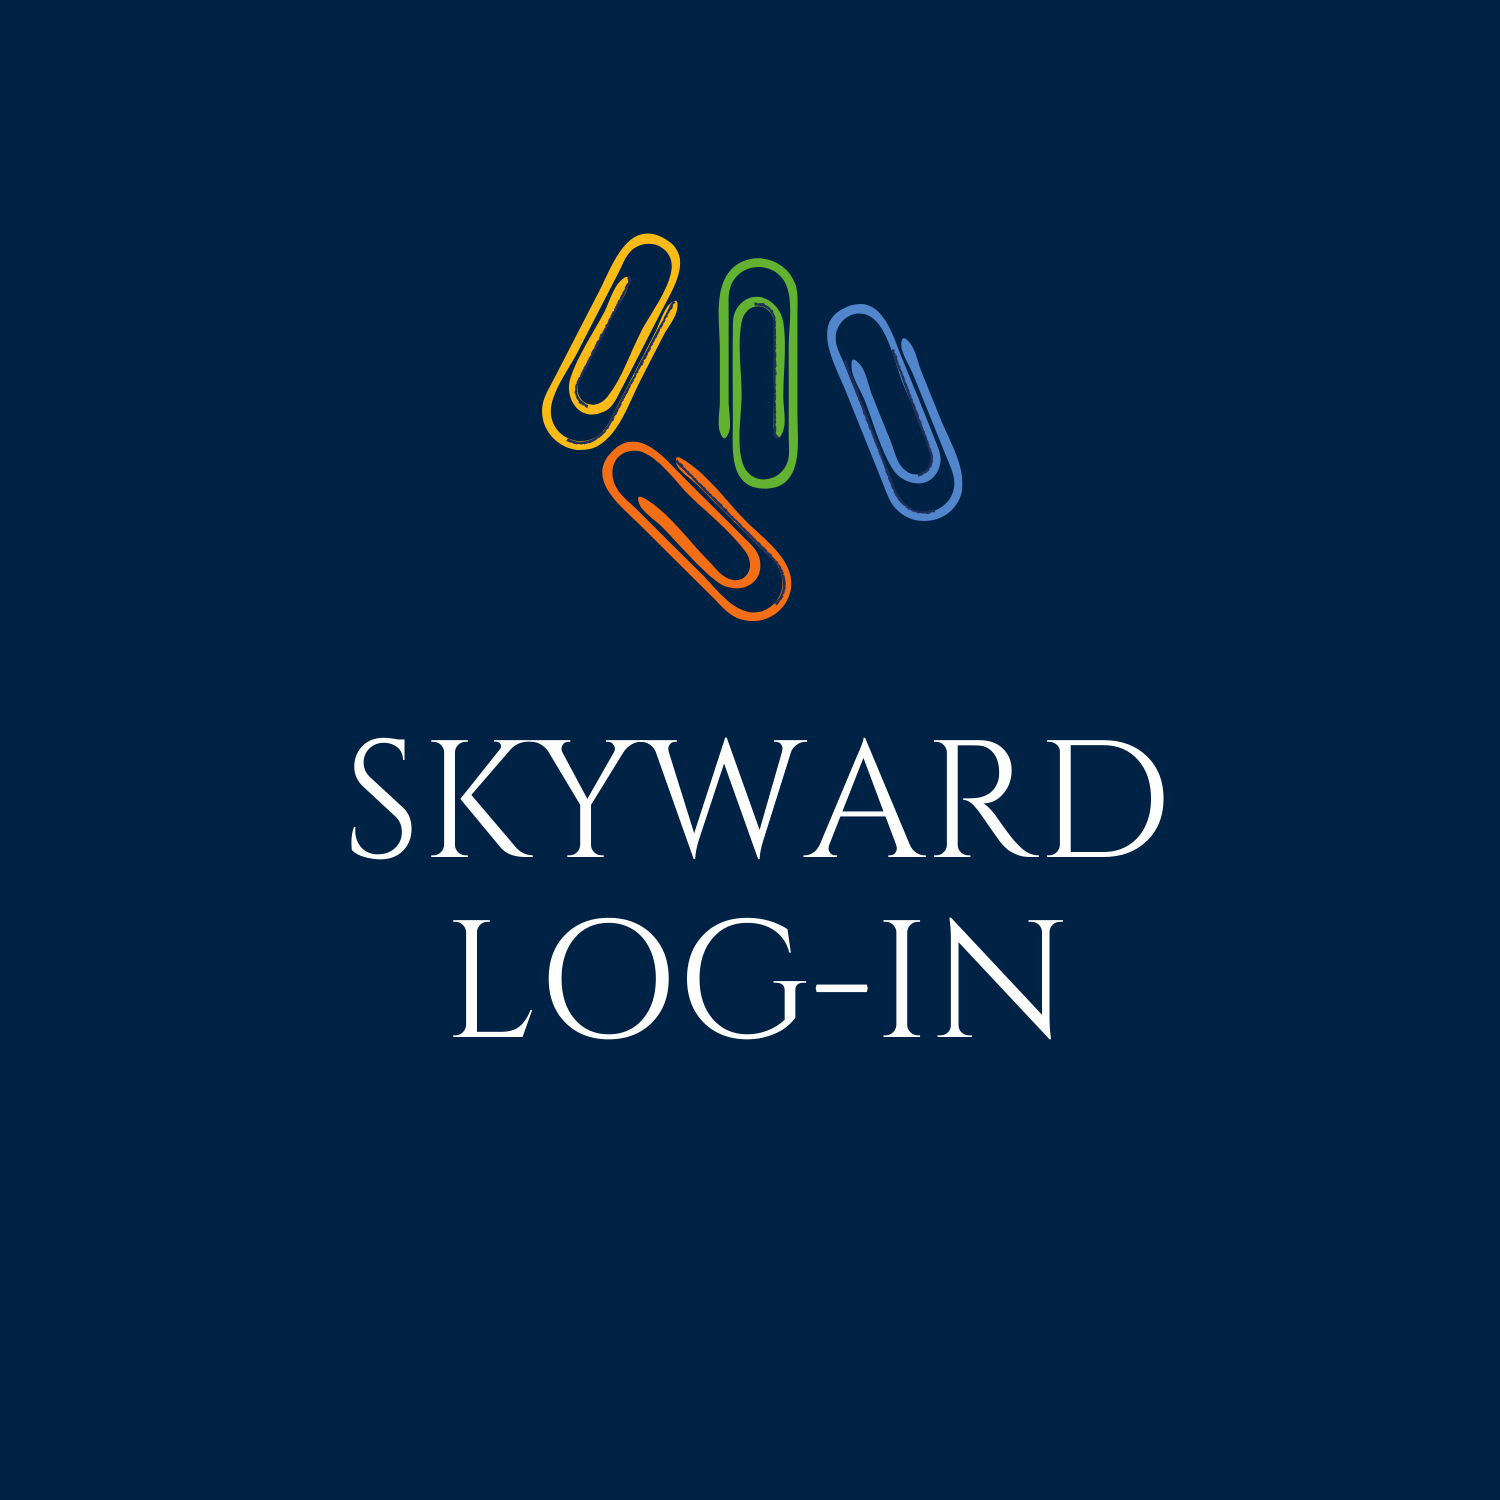 Skyward Log-in